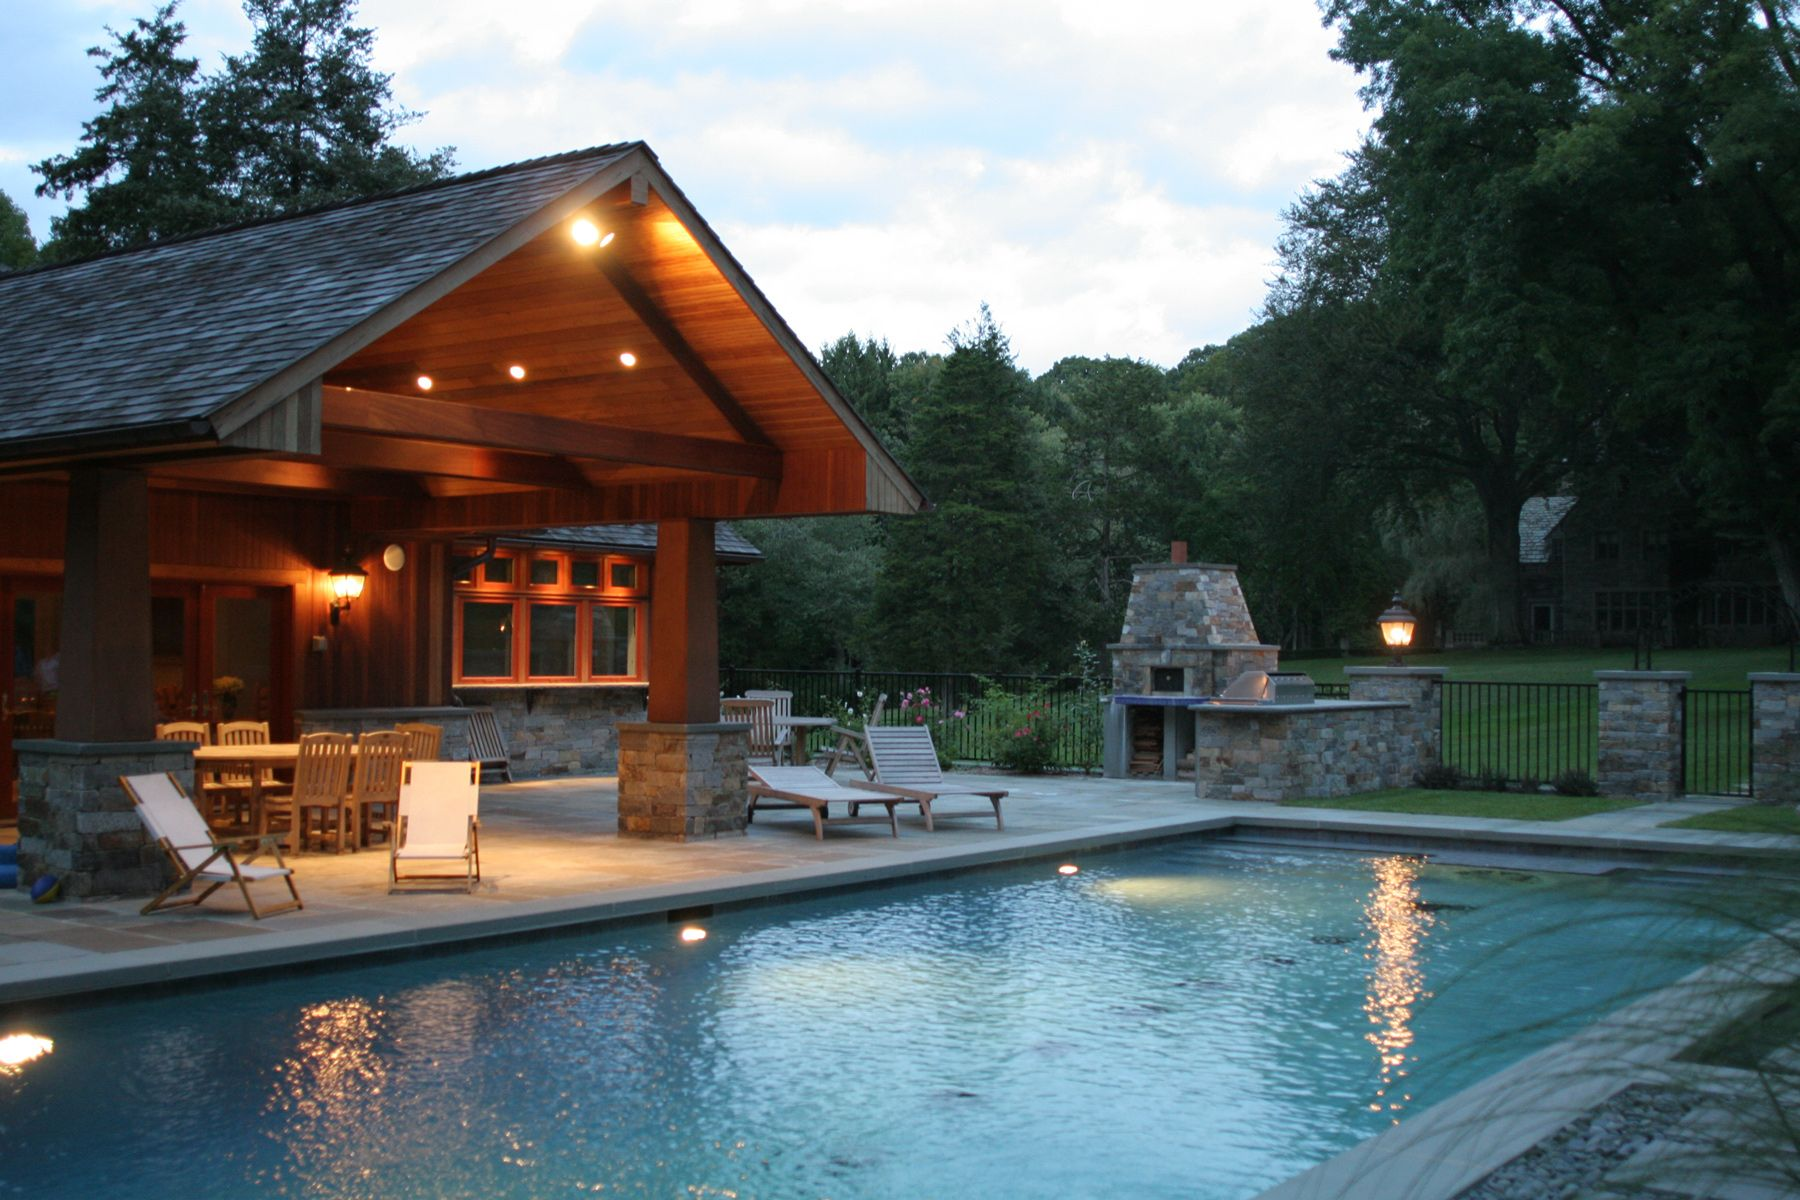 Poolhouse Google Search